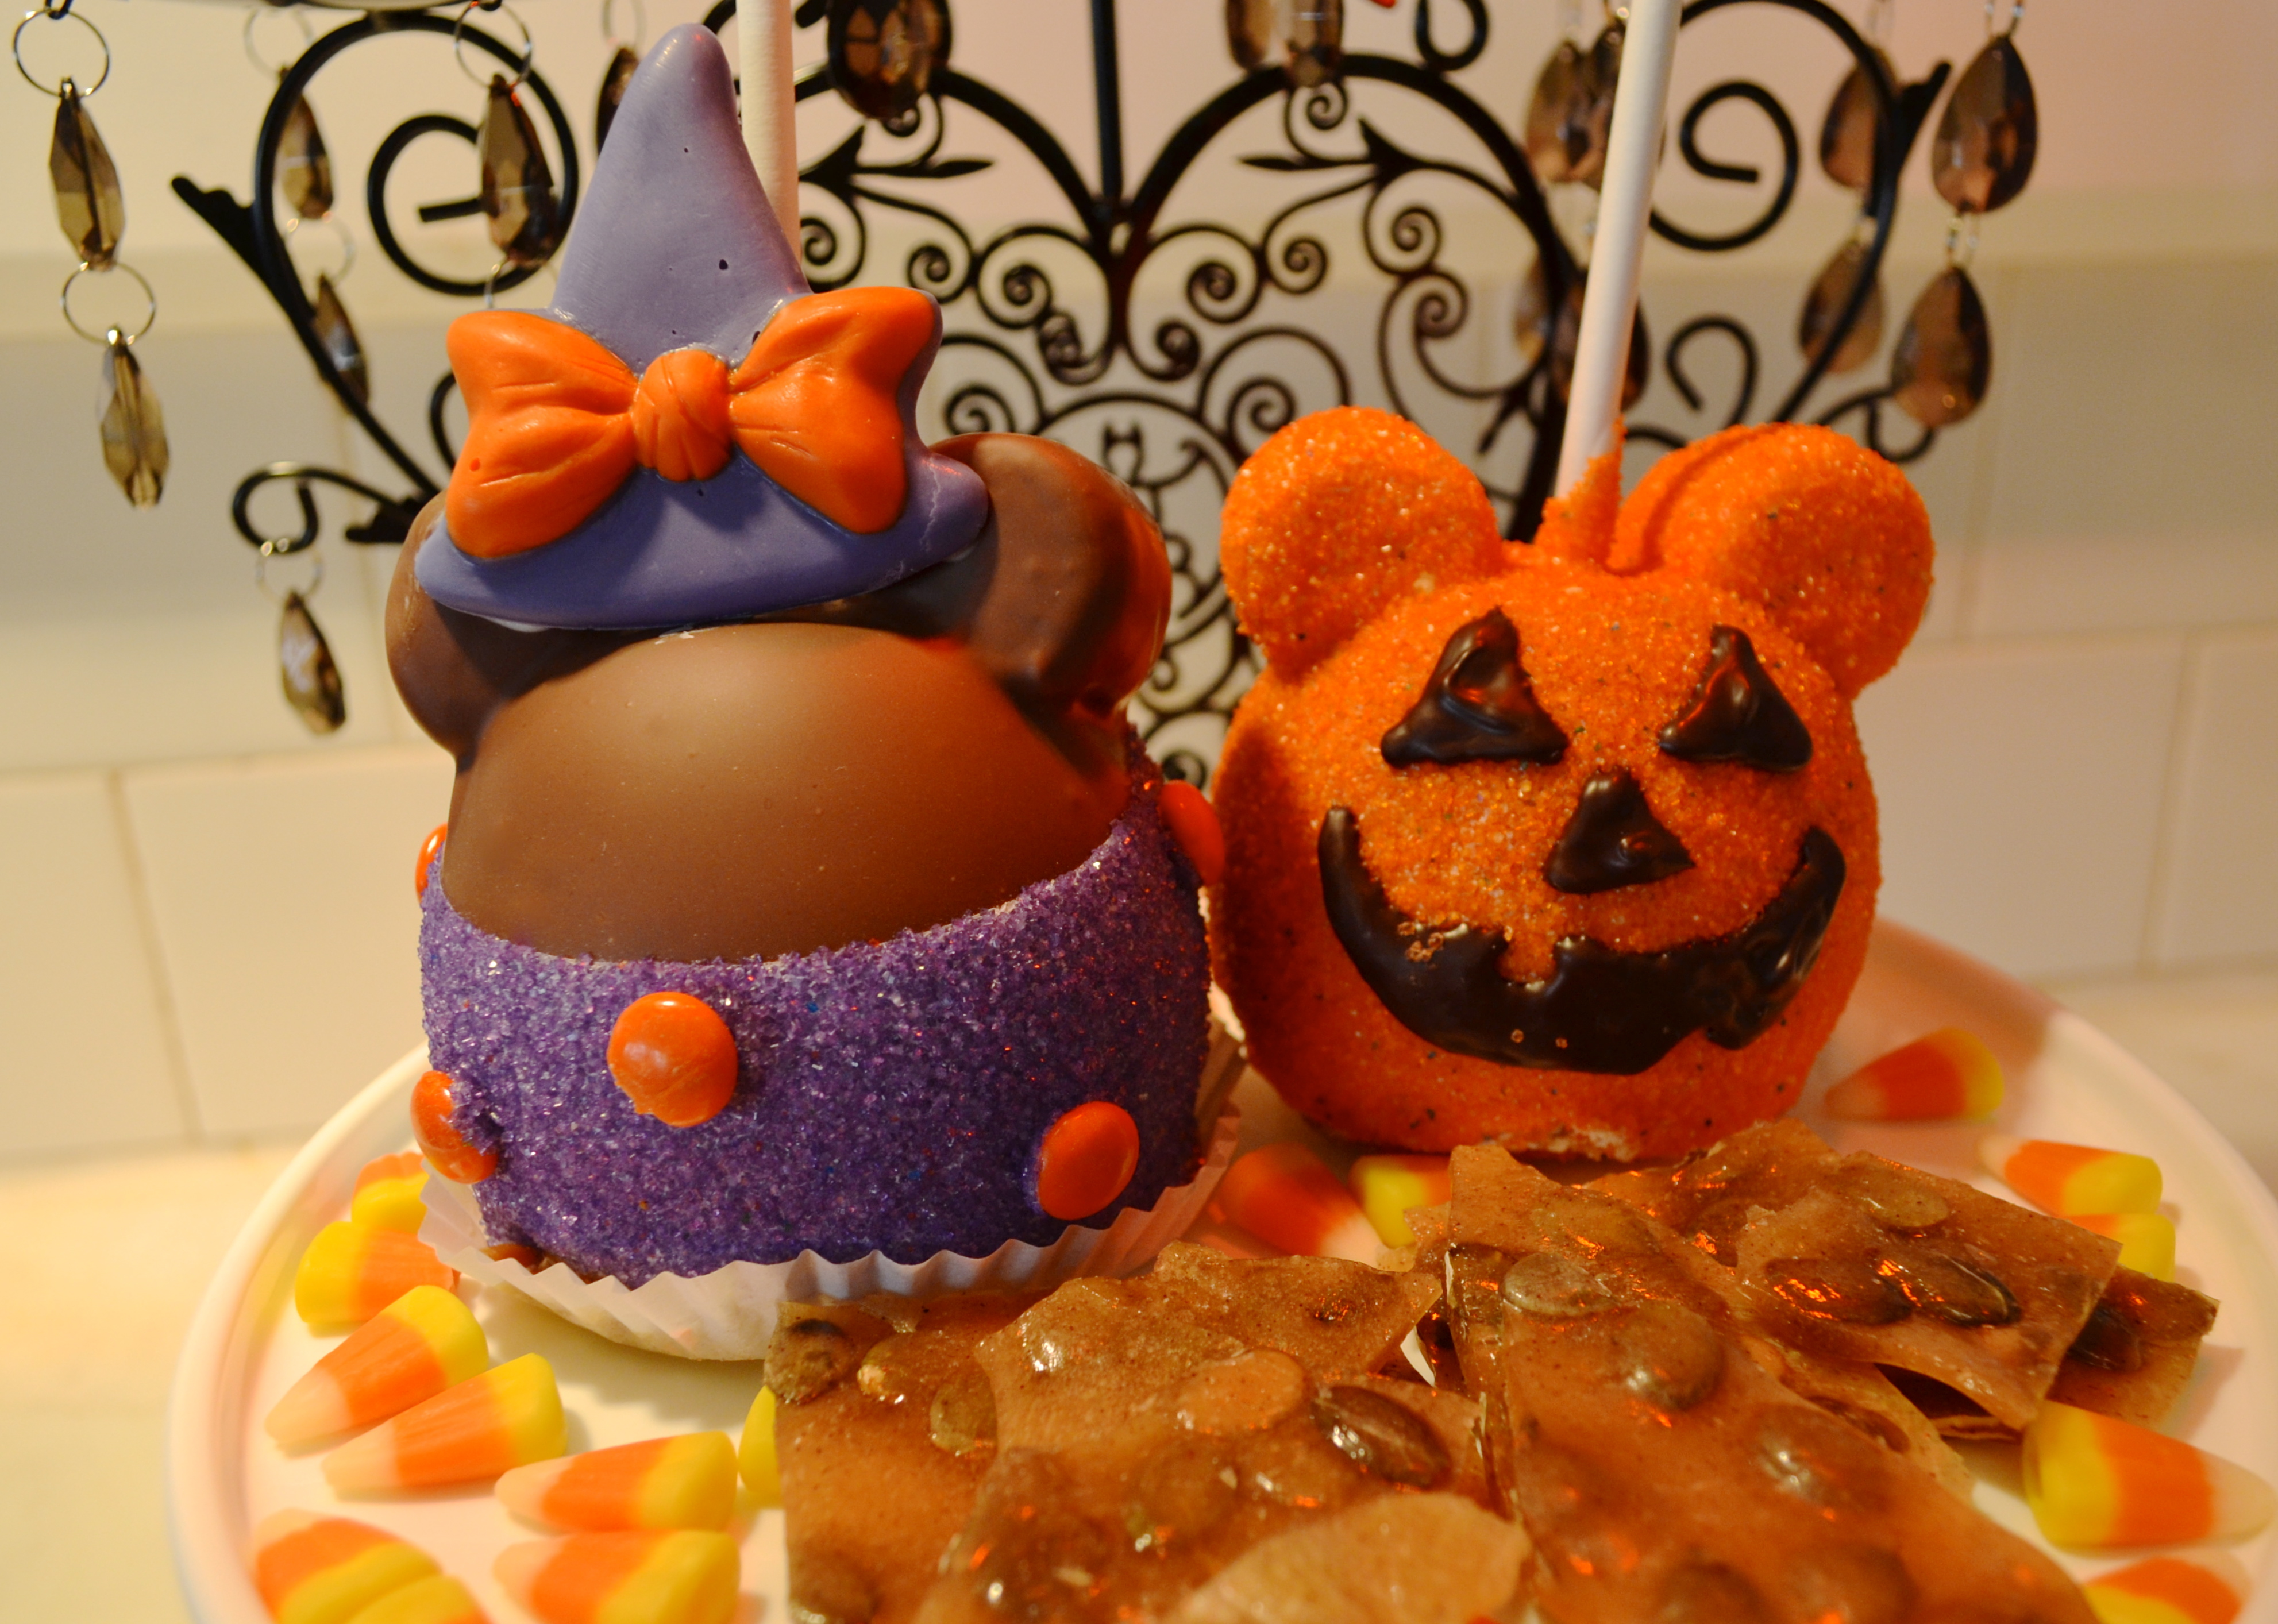 Pizza Wallpaper Cute Special Halloween Treats For A Limited Time At Disneyland